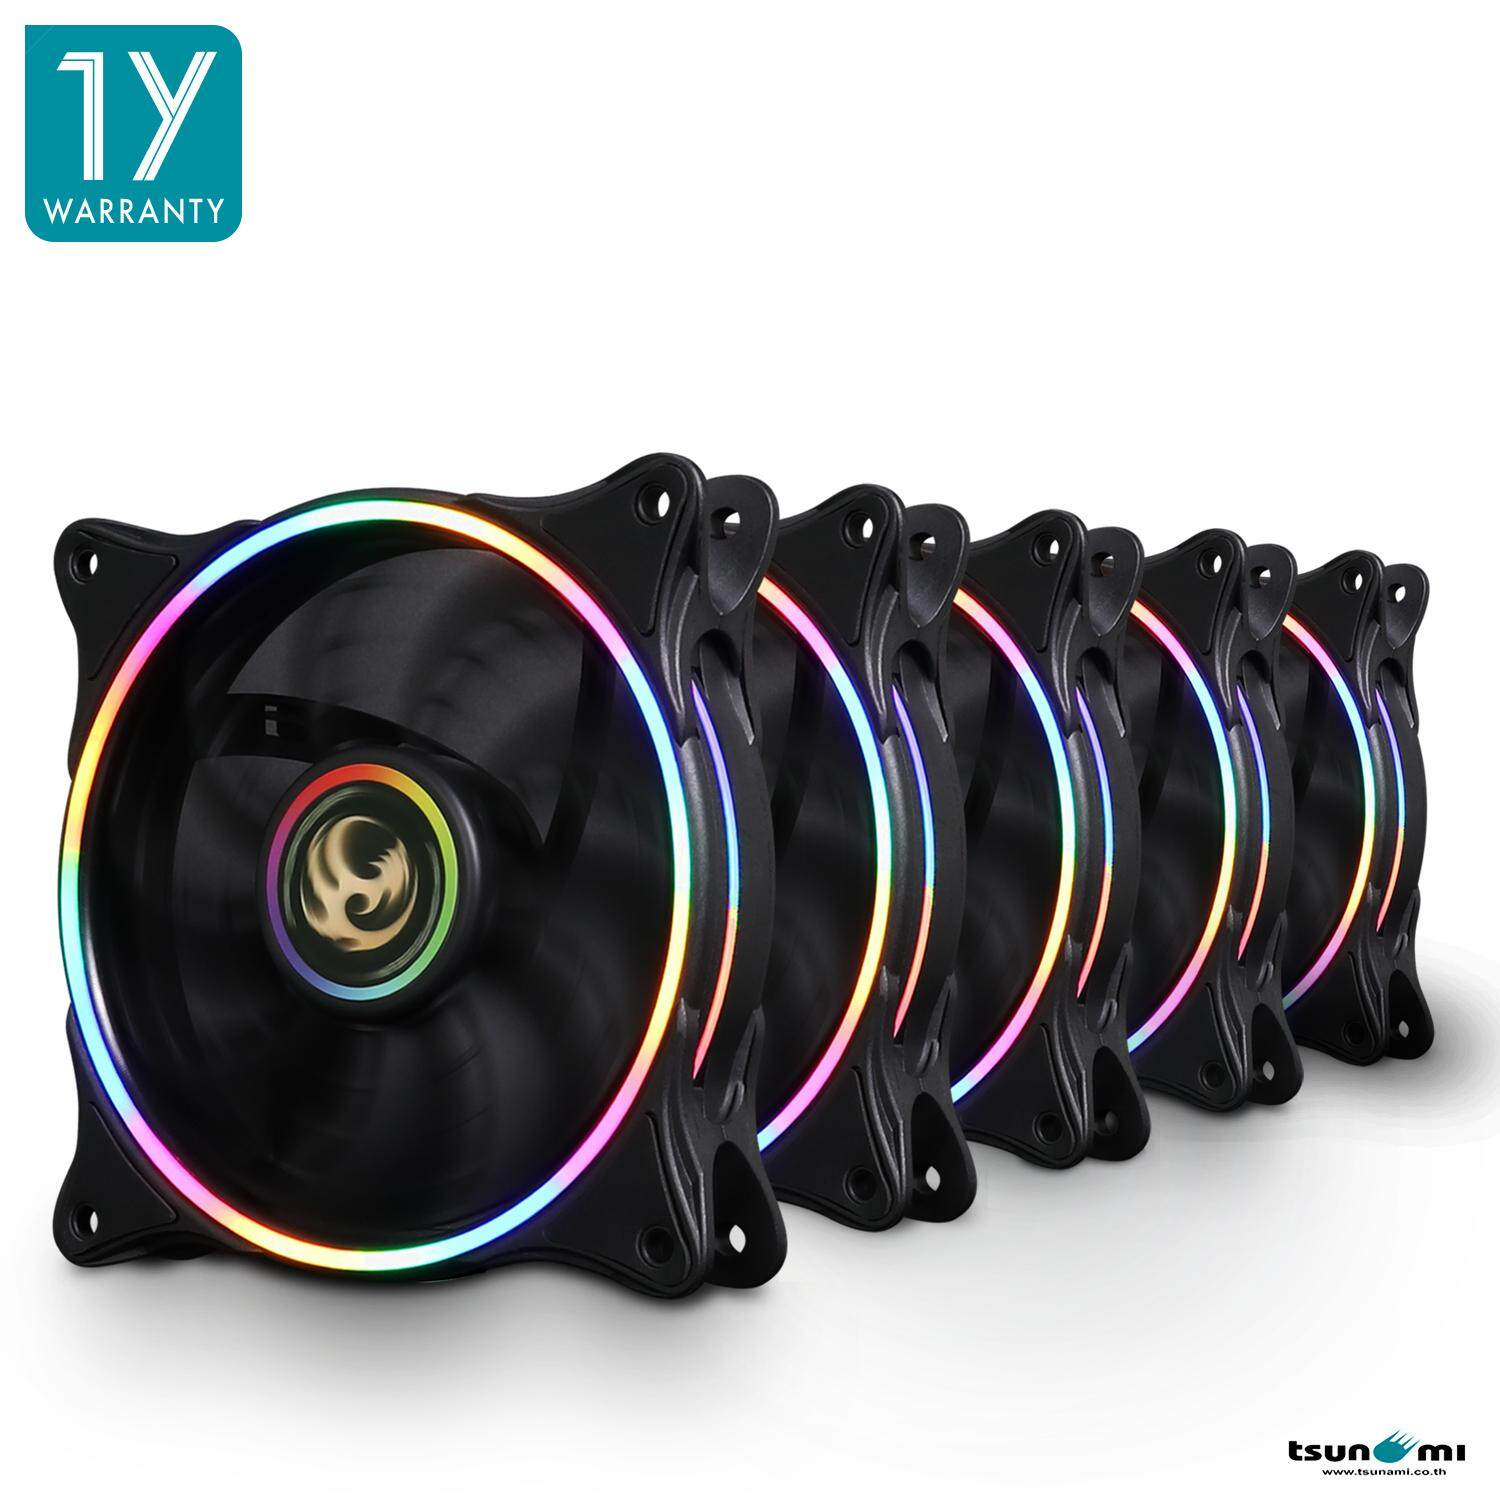 Tsunami Neon Light Series 12CM RGB P.W.M. Speed control Cooling Fan X 5